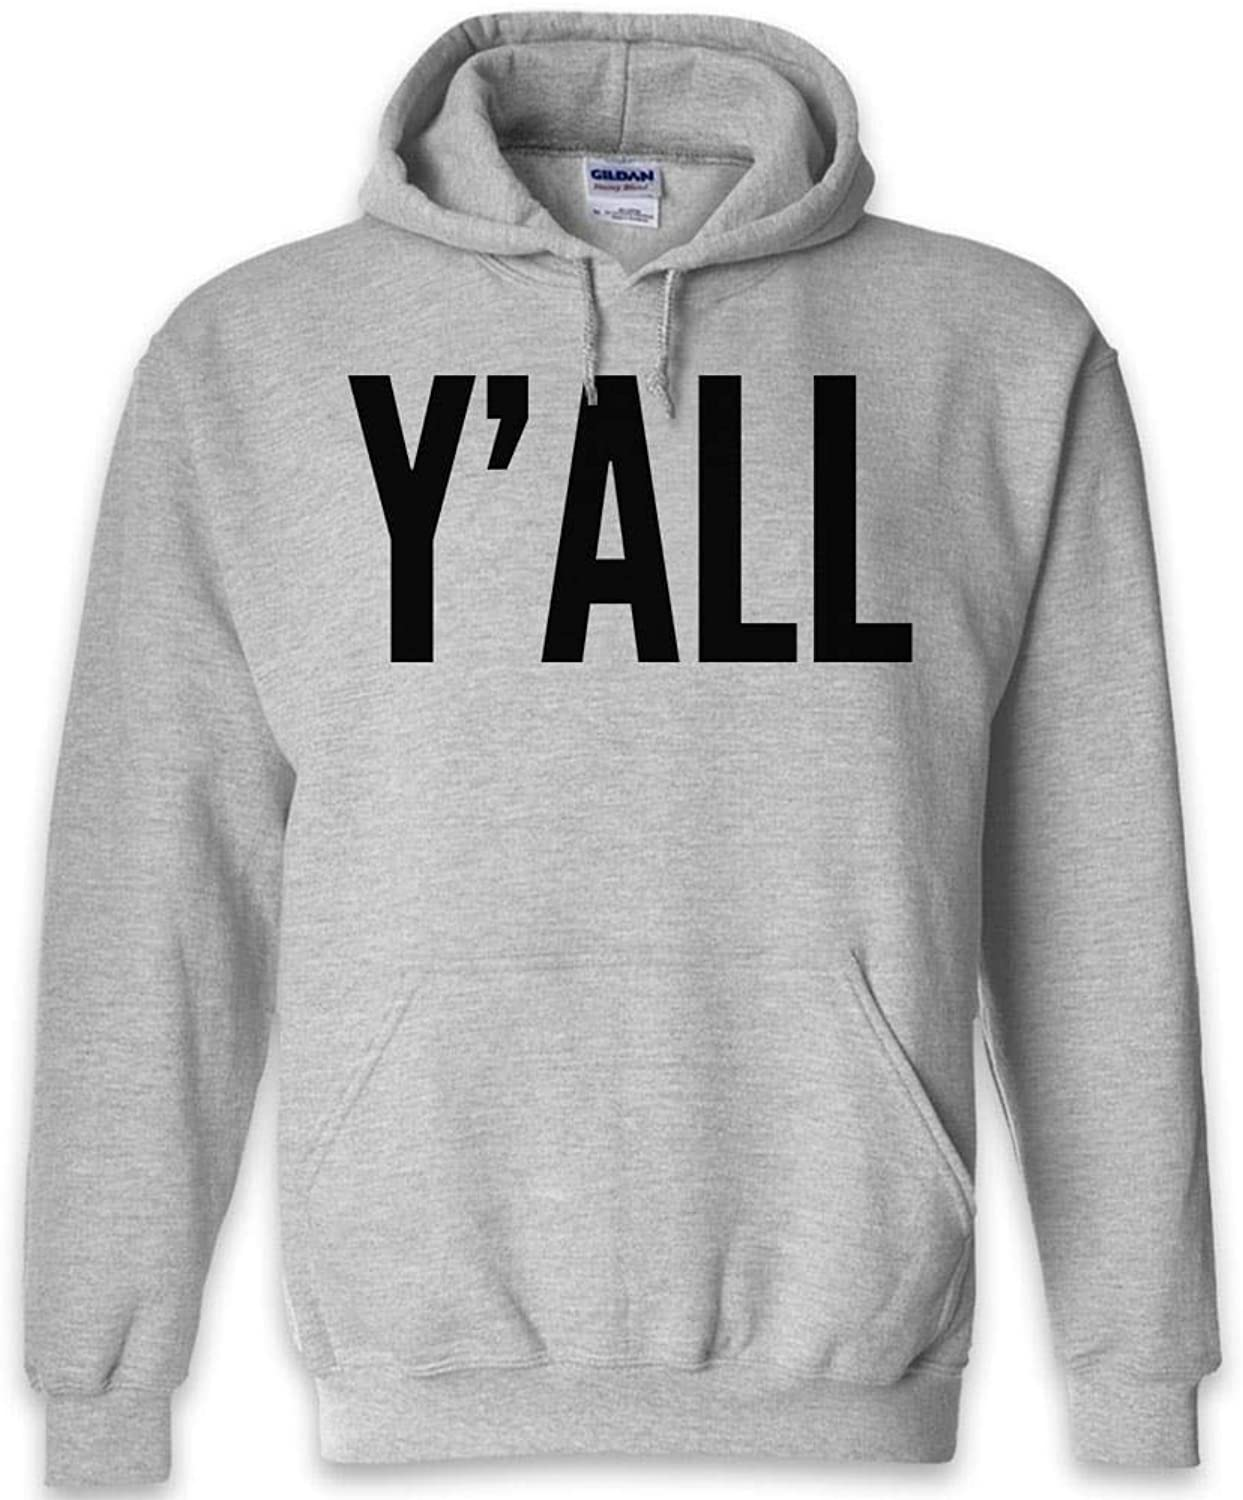 Yall Funny Hoodie   Black Navy Grey   S to 2XL